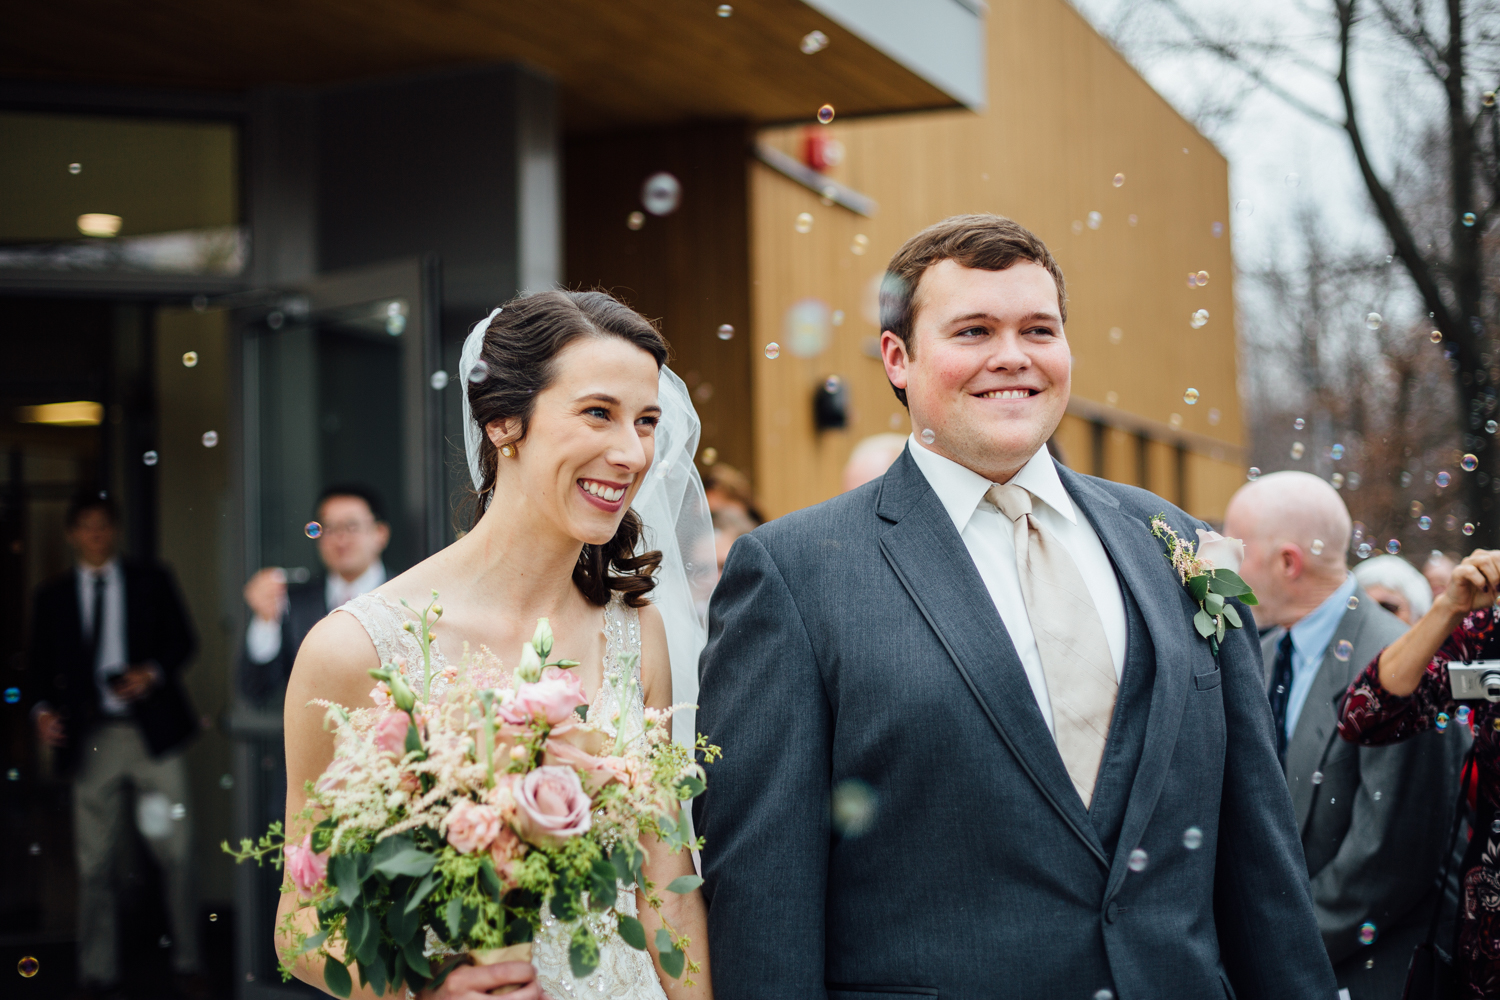 Fun, Intimate Spring Wedding by Corrie Mick Photography-49.jpg